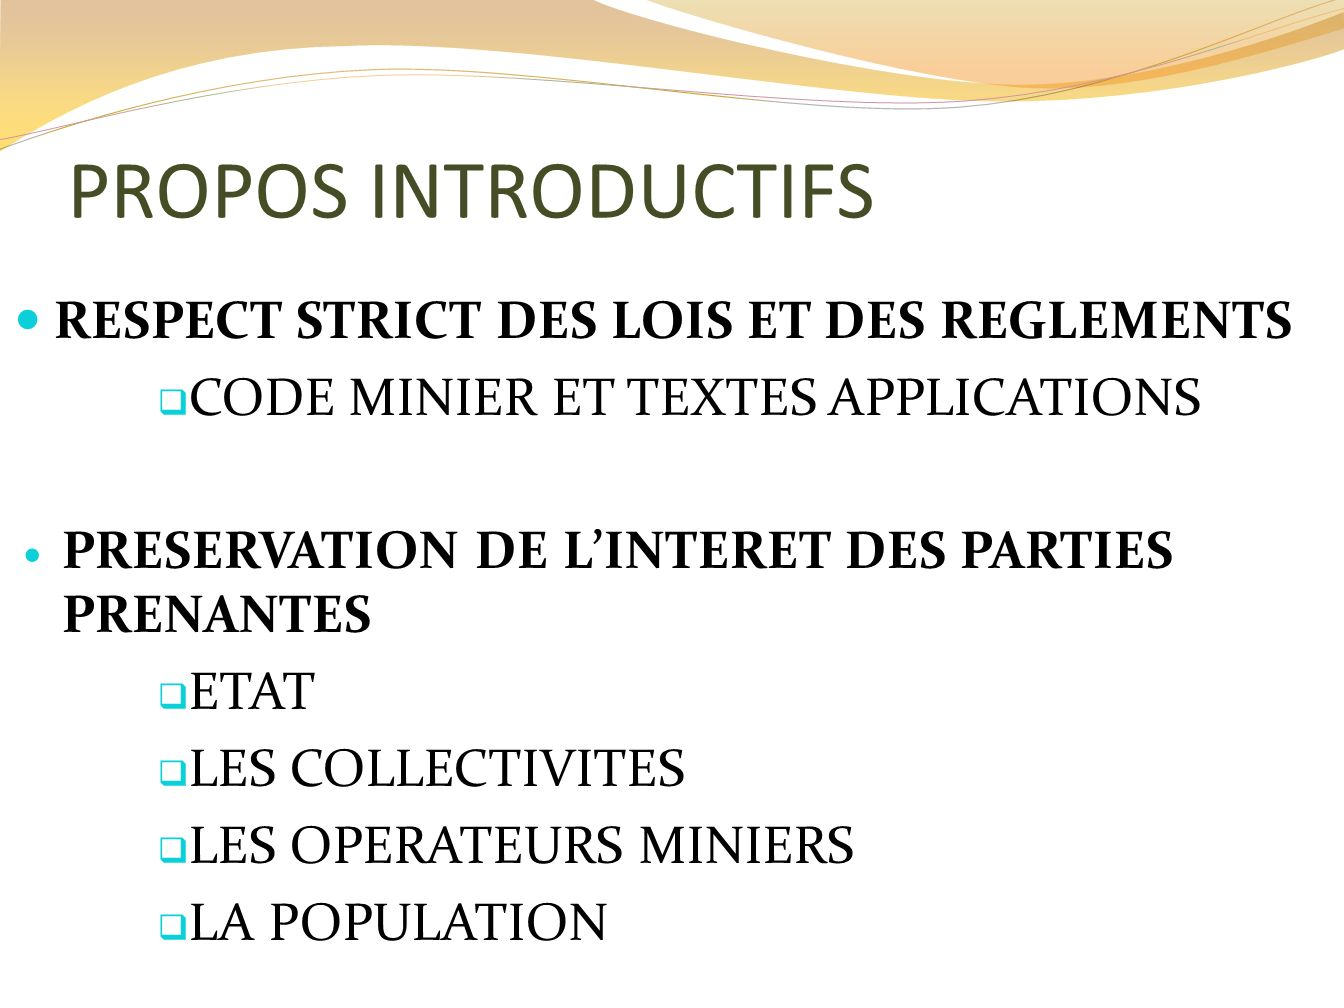 PROPOS INTRODUCTIFS RESPECT STRICT DES LOIS ET DES REGLEMENTS CODE MINIER ET TEXTES APPLICATIONS PRESERVATION DE LINTERET DES PARTIES PRENANTES ETAT L